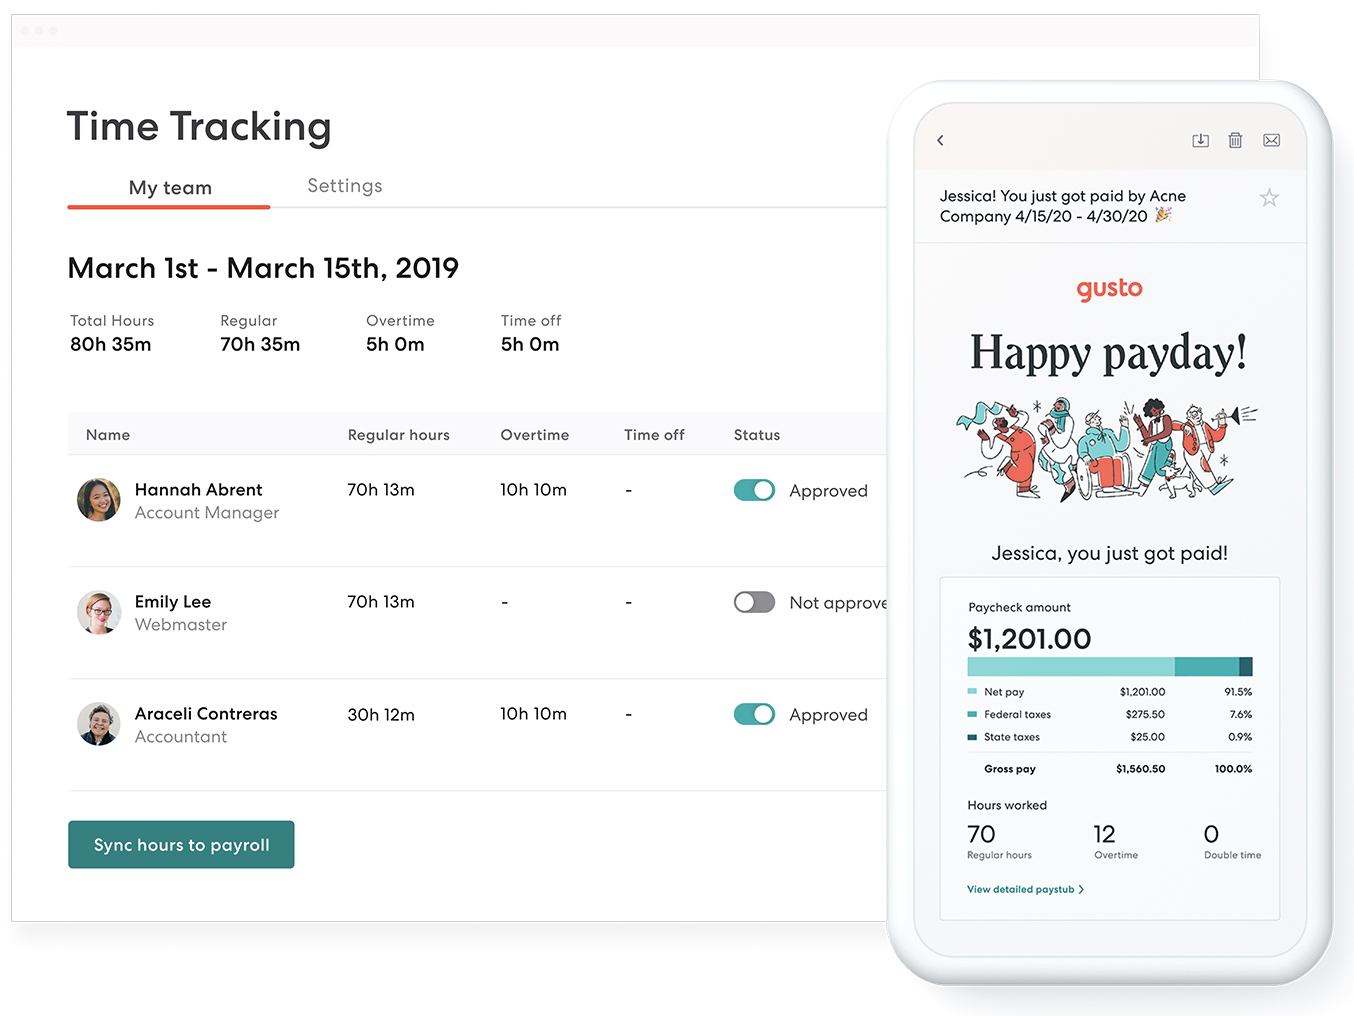 The best time tools? The ones that sync with payroll. - Track everything in one place. One password to remember. One place to manage it all. One click to sync with payroll.Automate the most tedious tasks. See ya later, spreadsheets. We'll automatically calculate your team's wages and track time off.Don't sweat compliance details. Store wage records automatically and get help with compliance, overtime, and more.